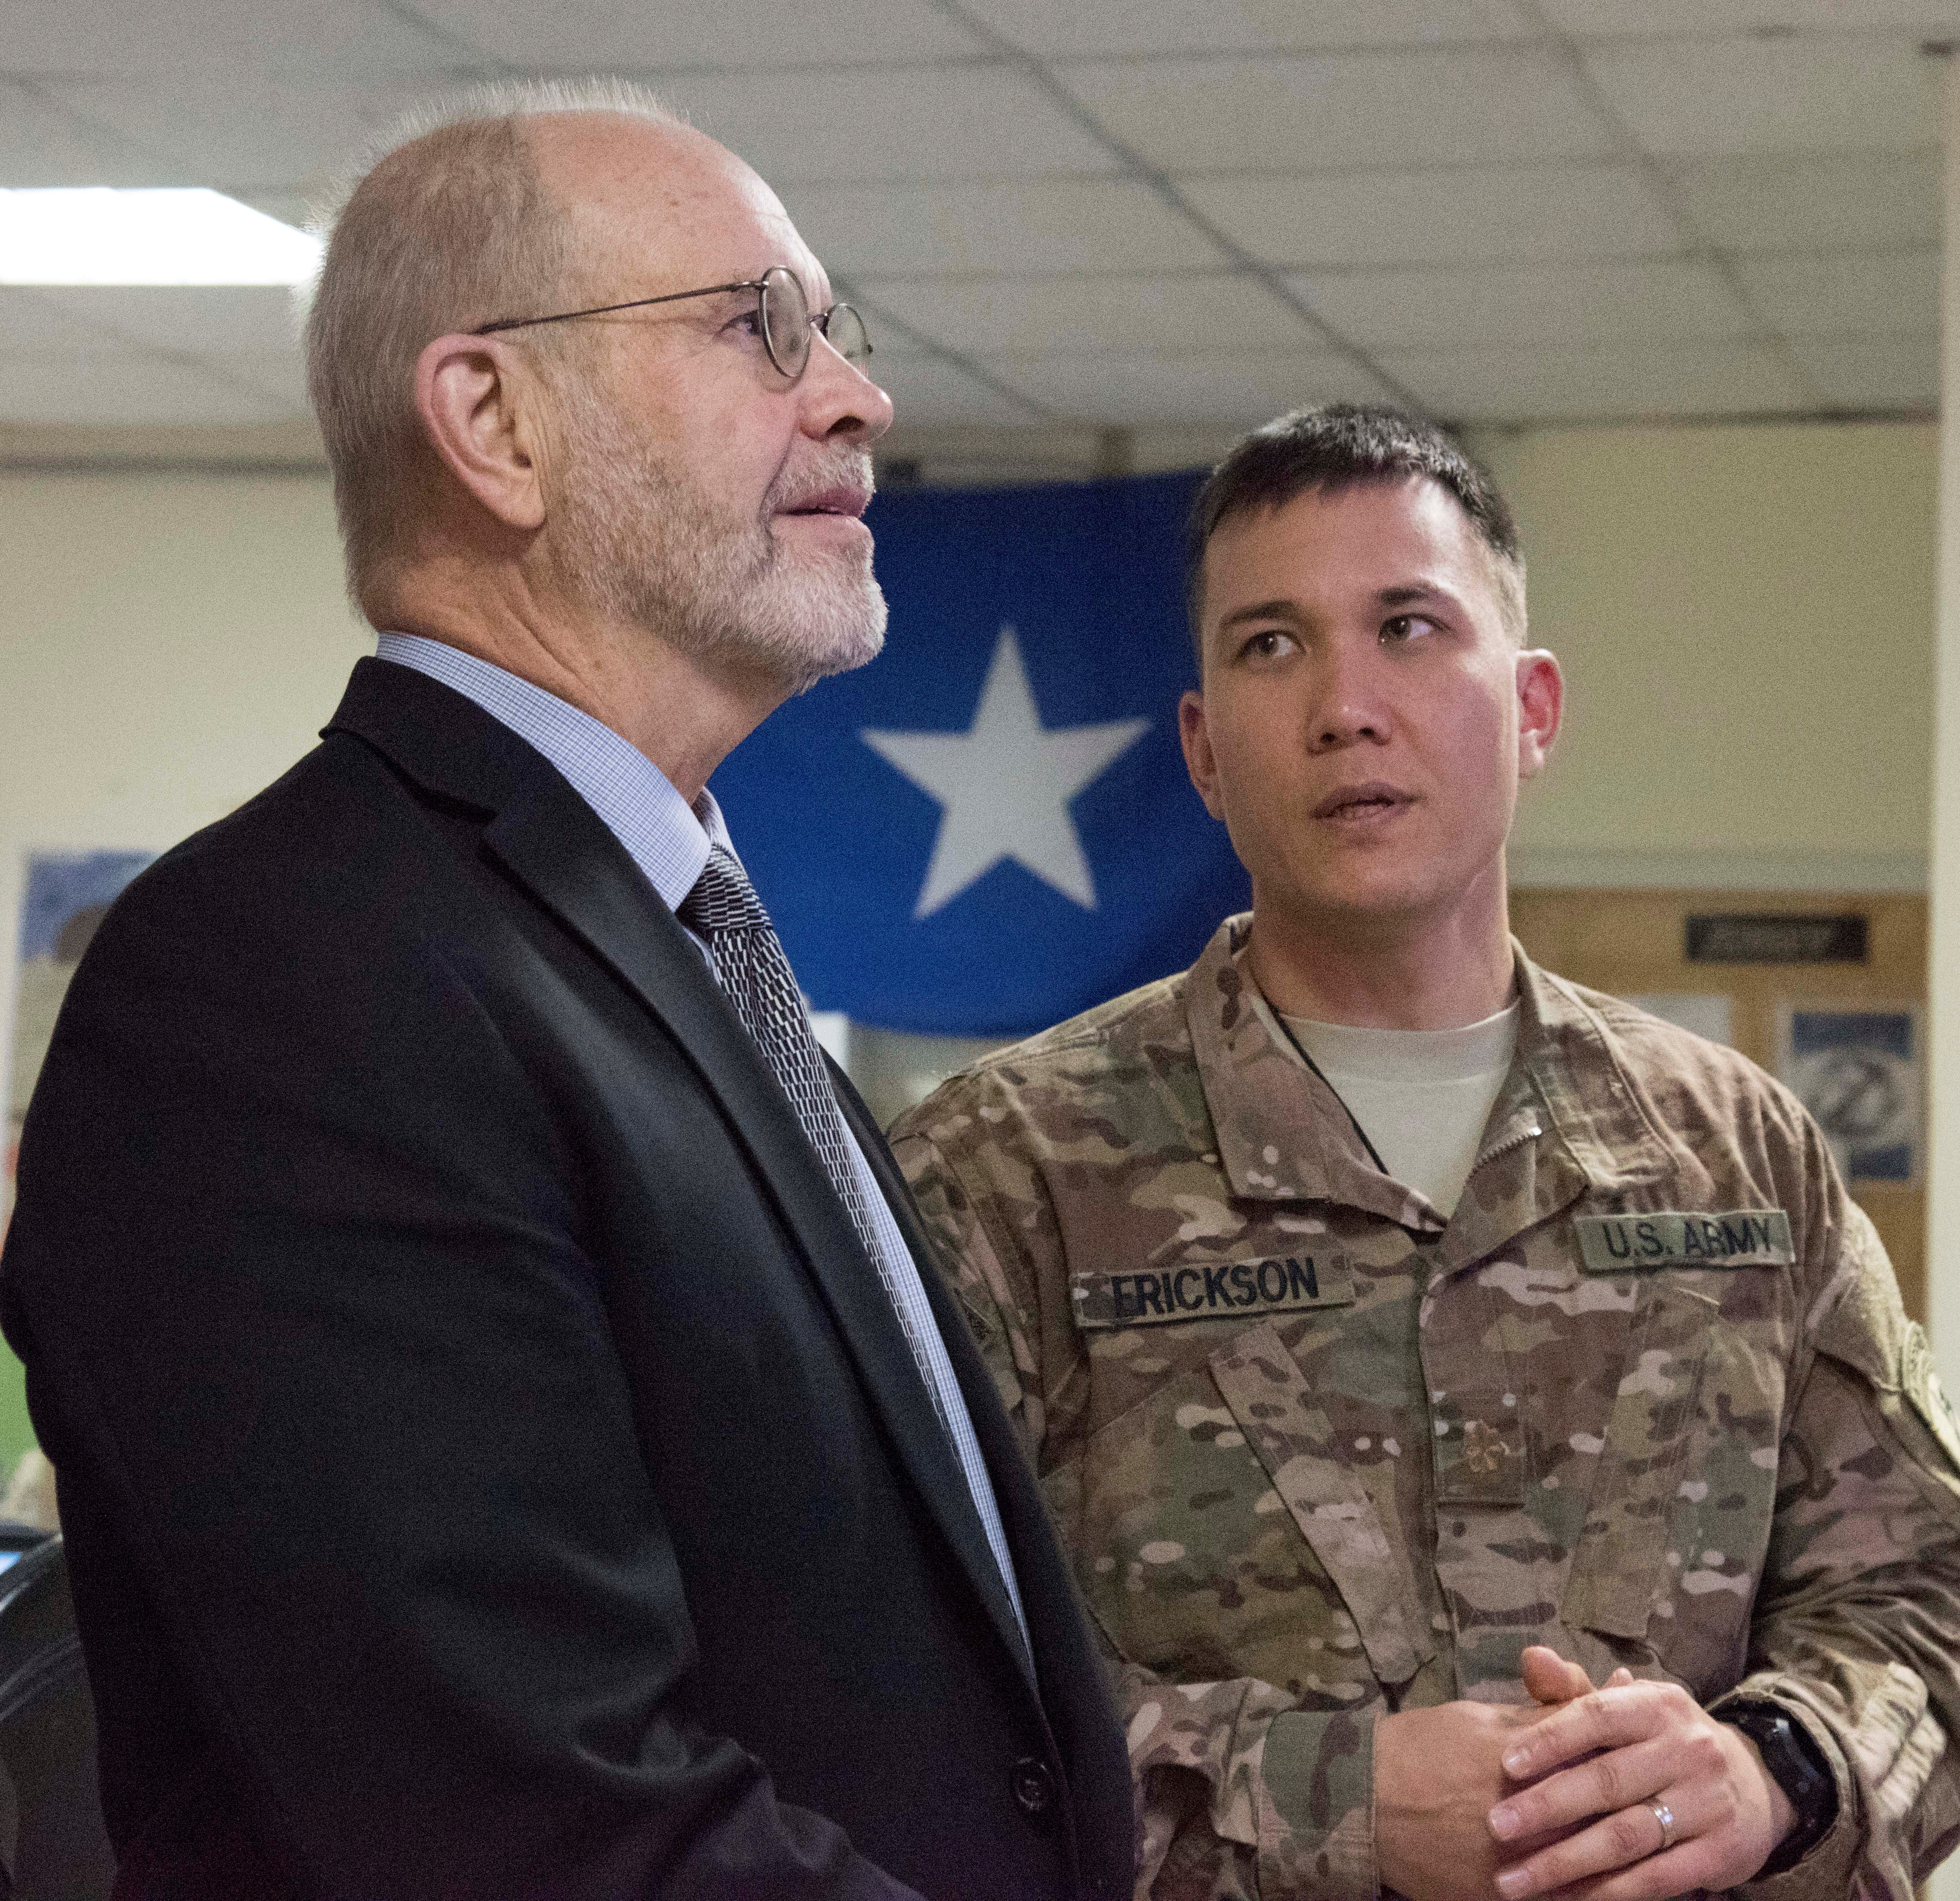 Retired Ambassador David Kaeuper, U.S. Chargé d'Affaires to Somalia hears an explanation from U.S. Army Maj. Kristopher Erickson, Somalia desk lead for the Fusion Action Cell hive at Camp Lemonnier, Djibouti, Oct. 15, 2015. The FAC personnel are separated into country desks composed of subject matter experts and foreign liaison officers who are responsible for streamlining the planning and coordination of projects in their respective countries. (U.S. Air Force photo by Staff Sgt. Victoria Sneed)